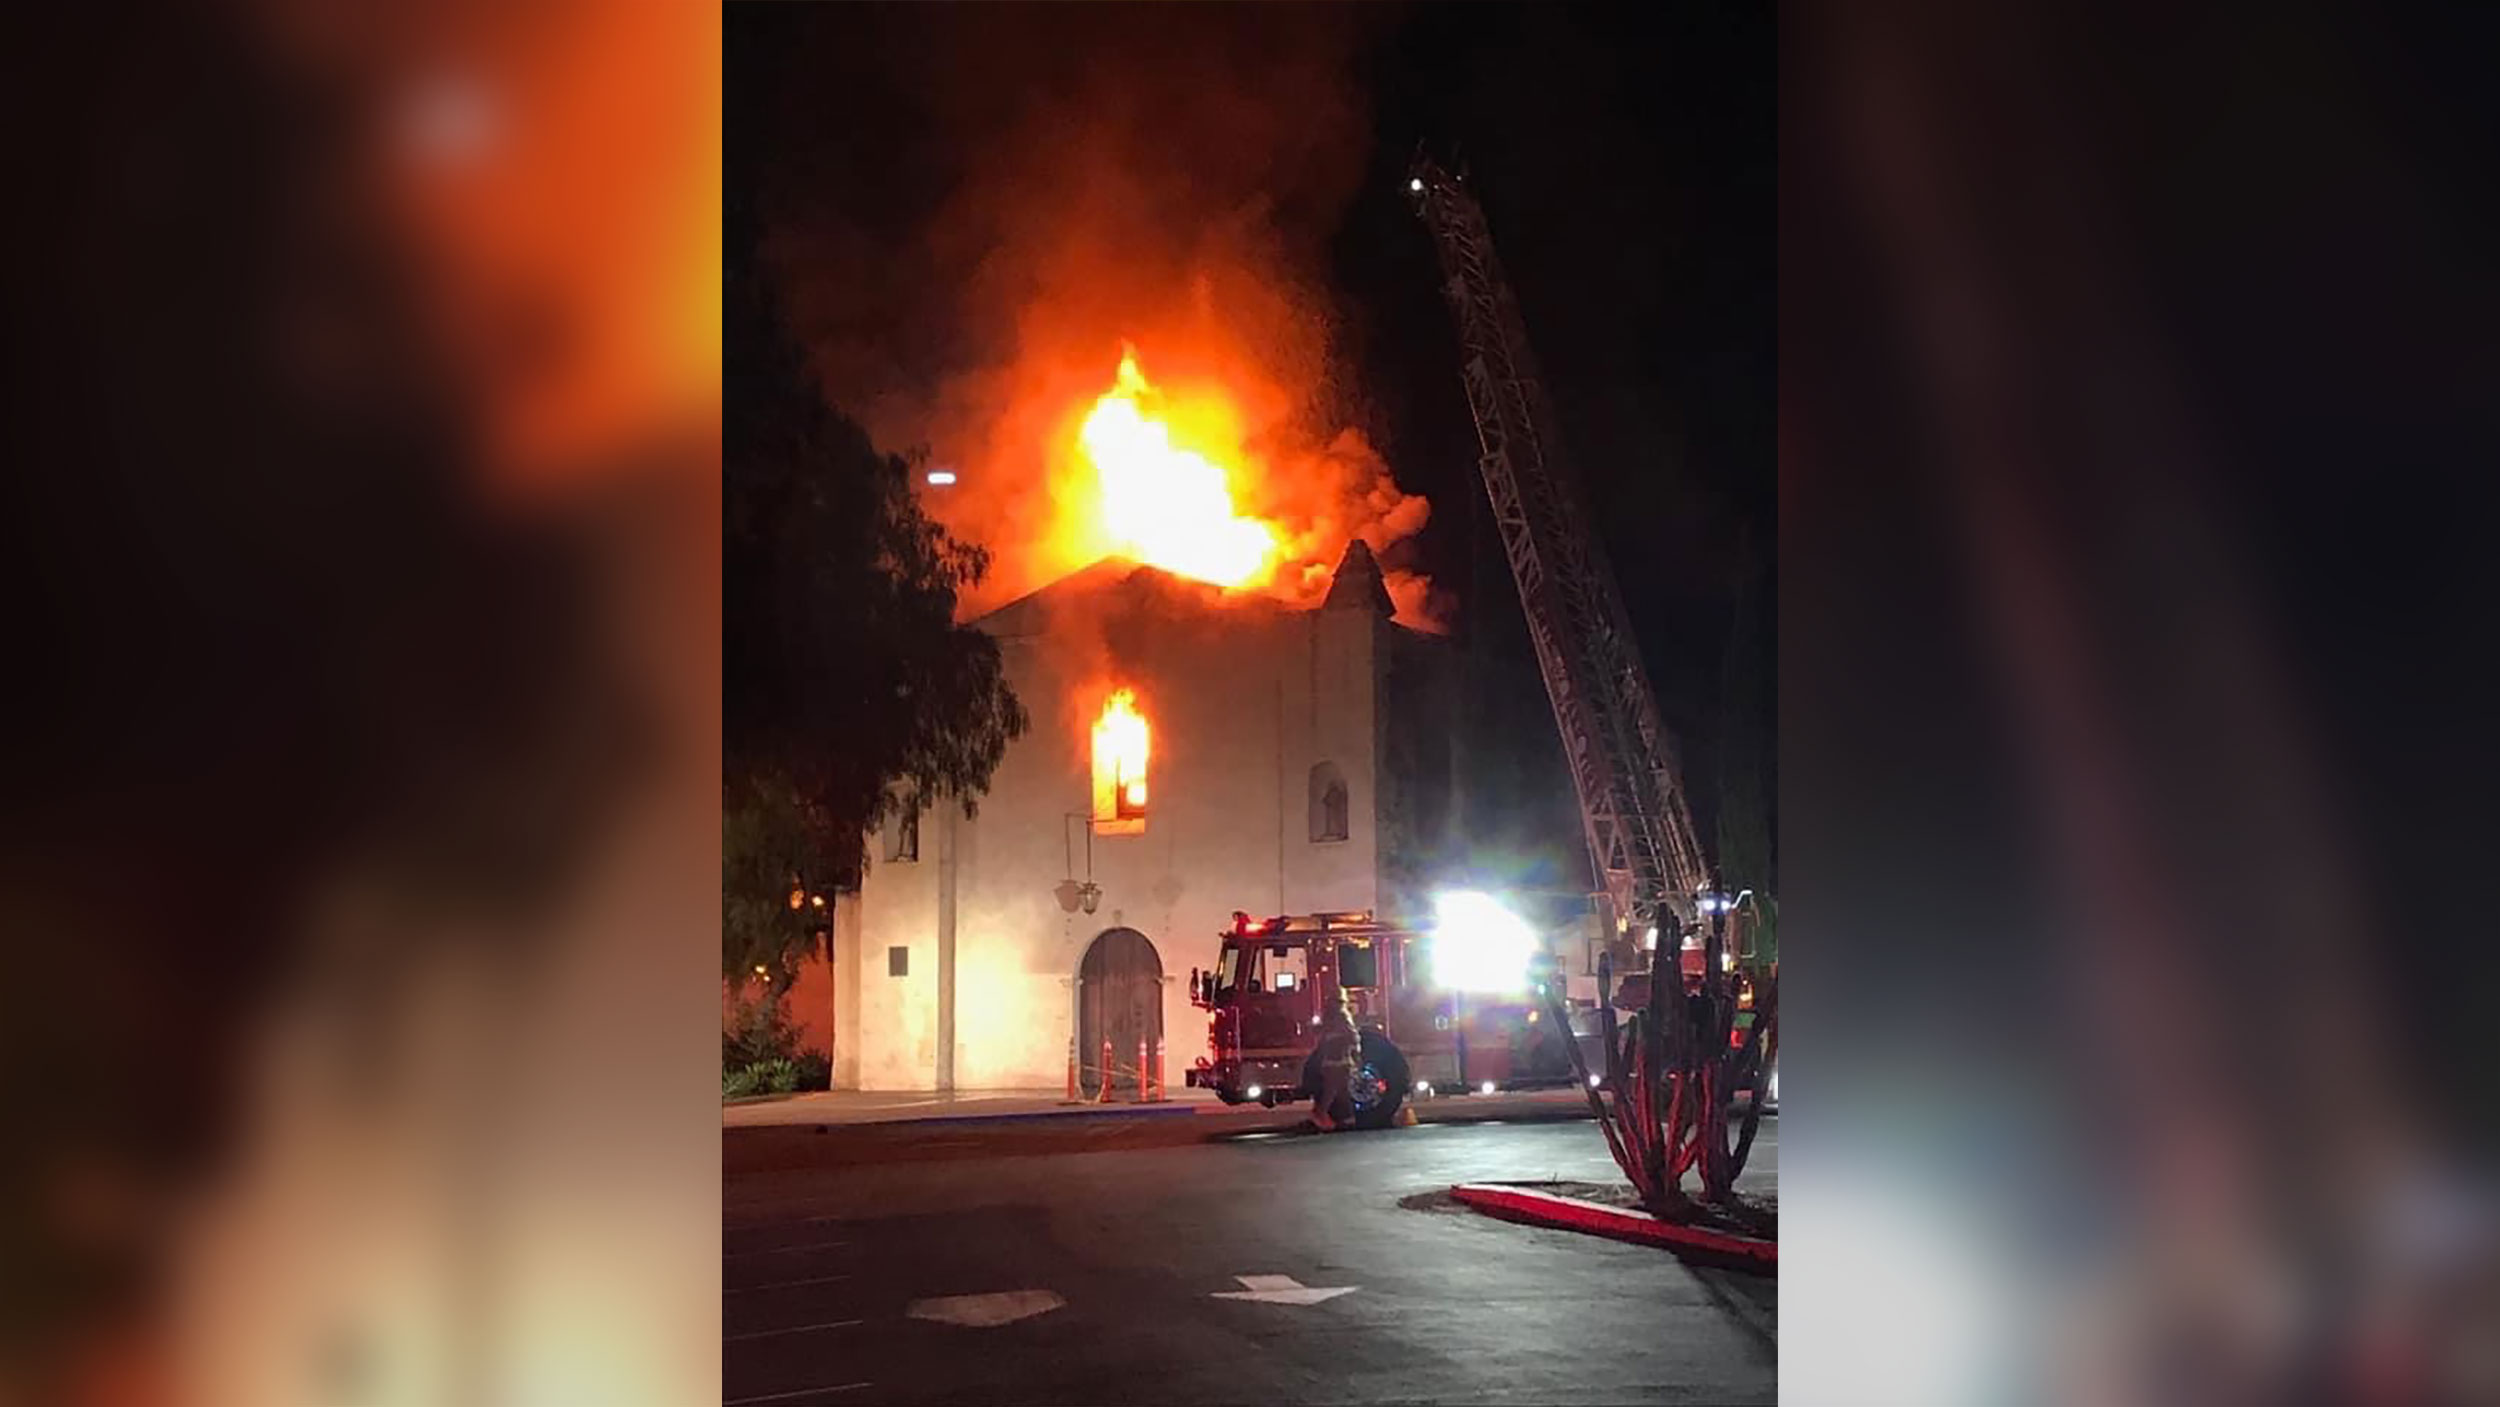 A massive fire has destroyed a 249-year-old church in California